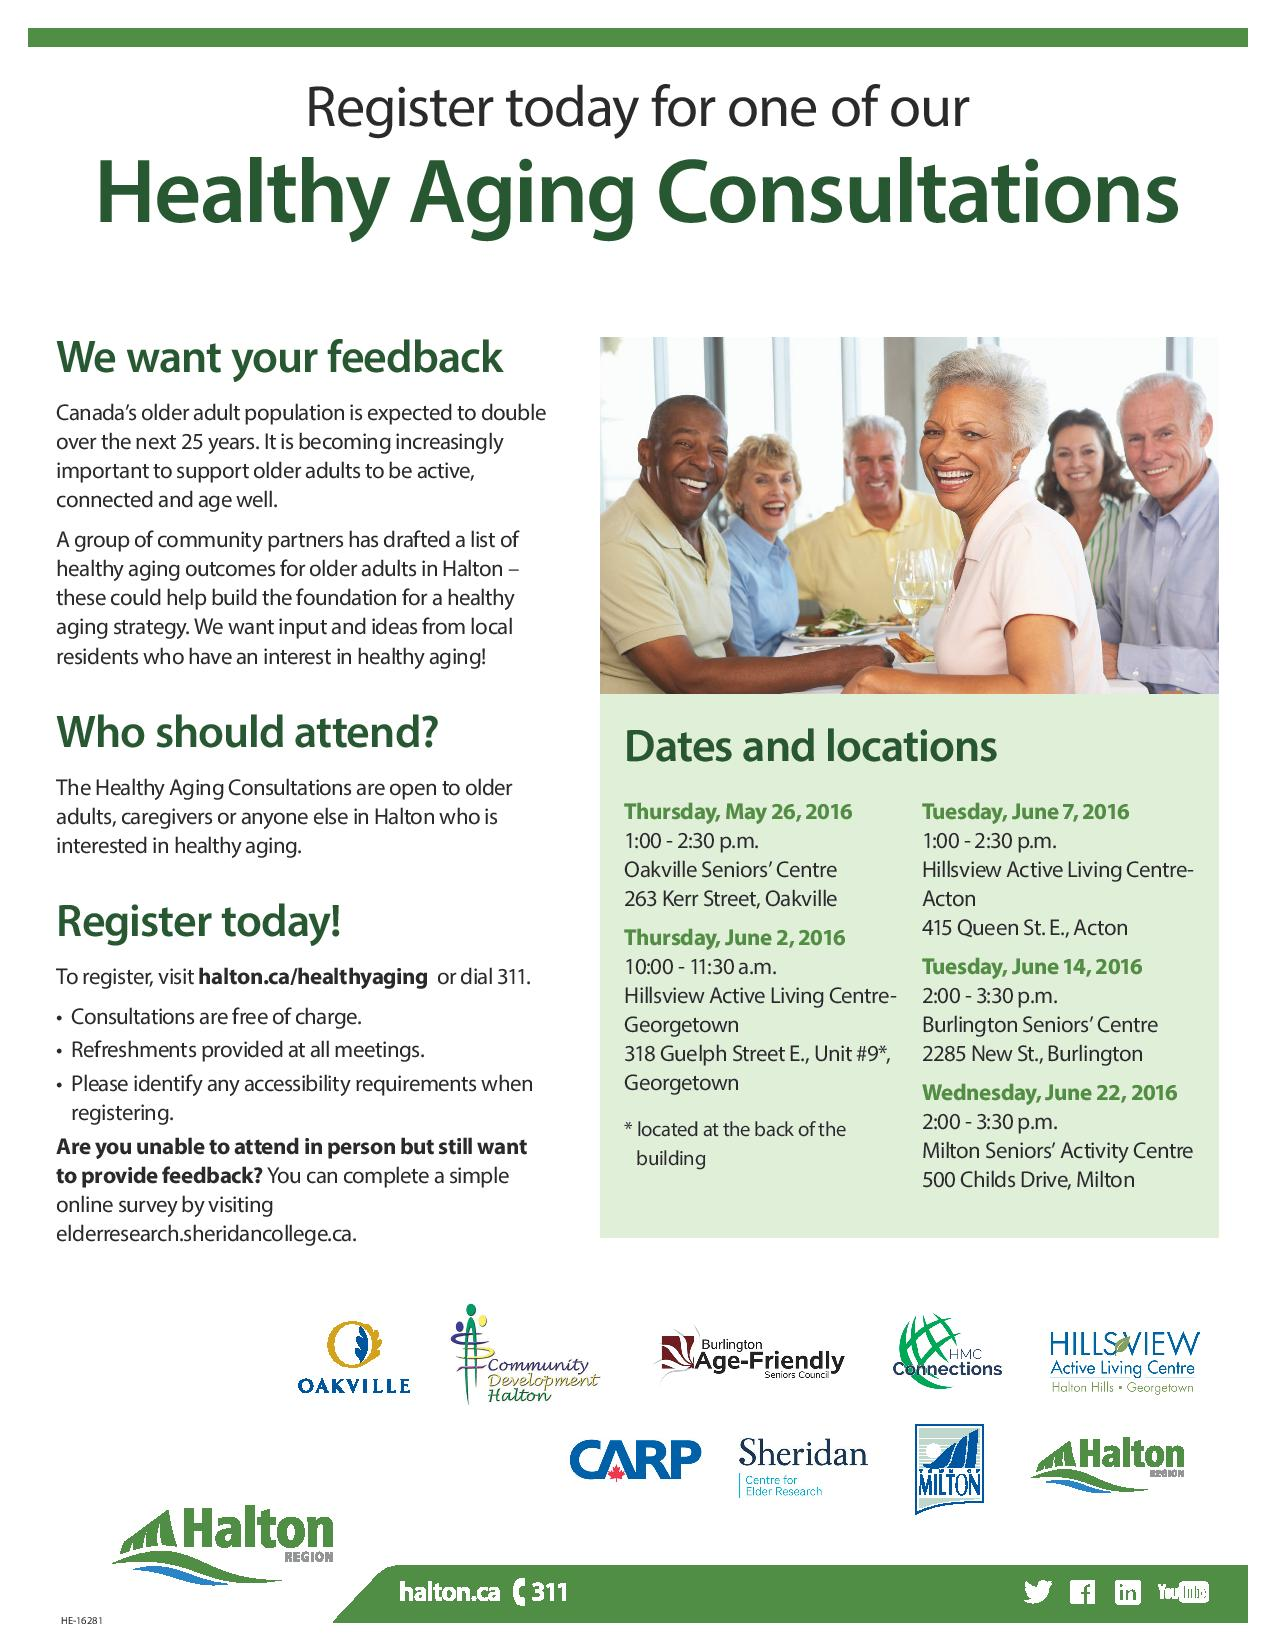 HE-16281_Healthy aging flyer (1)-page-001